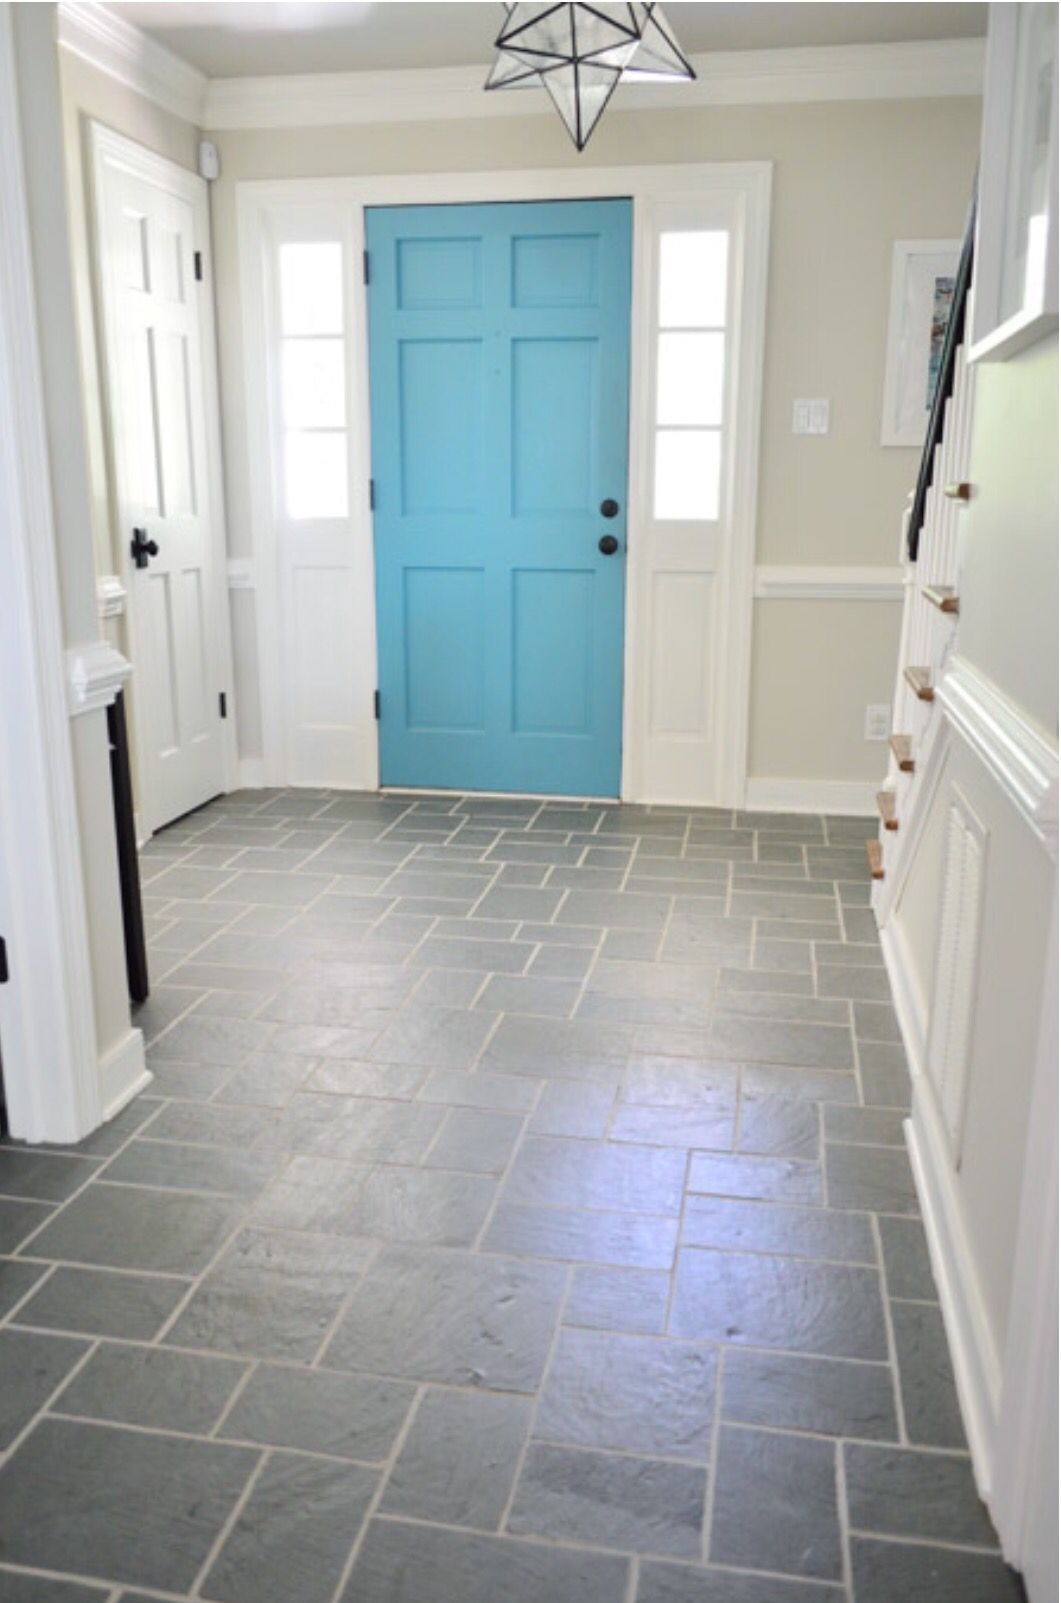 Foyer beauty | Home Style | Pinterest | Foyers, Slate flooring and ...